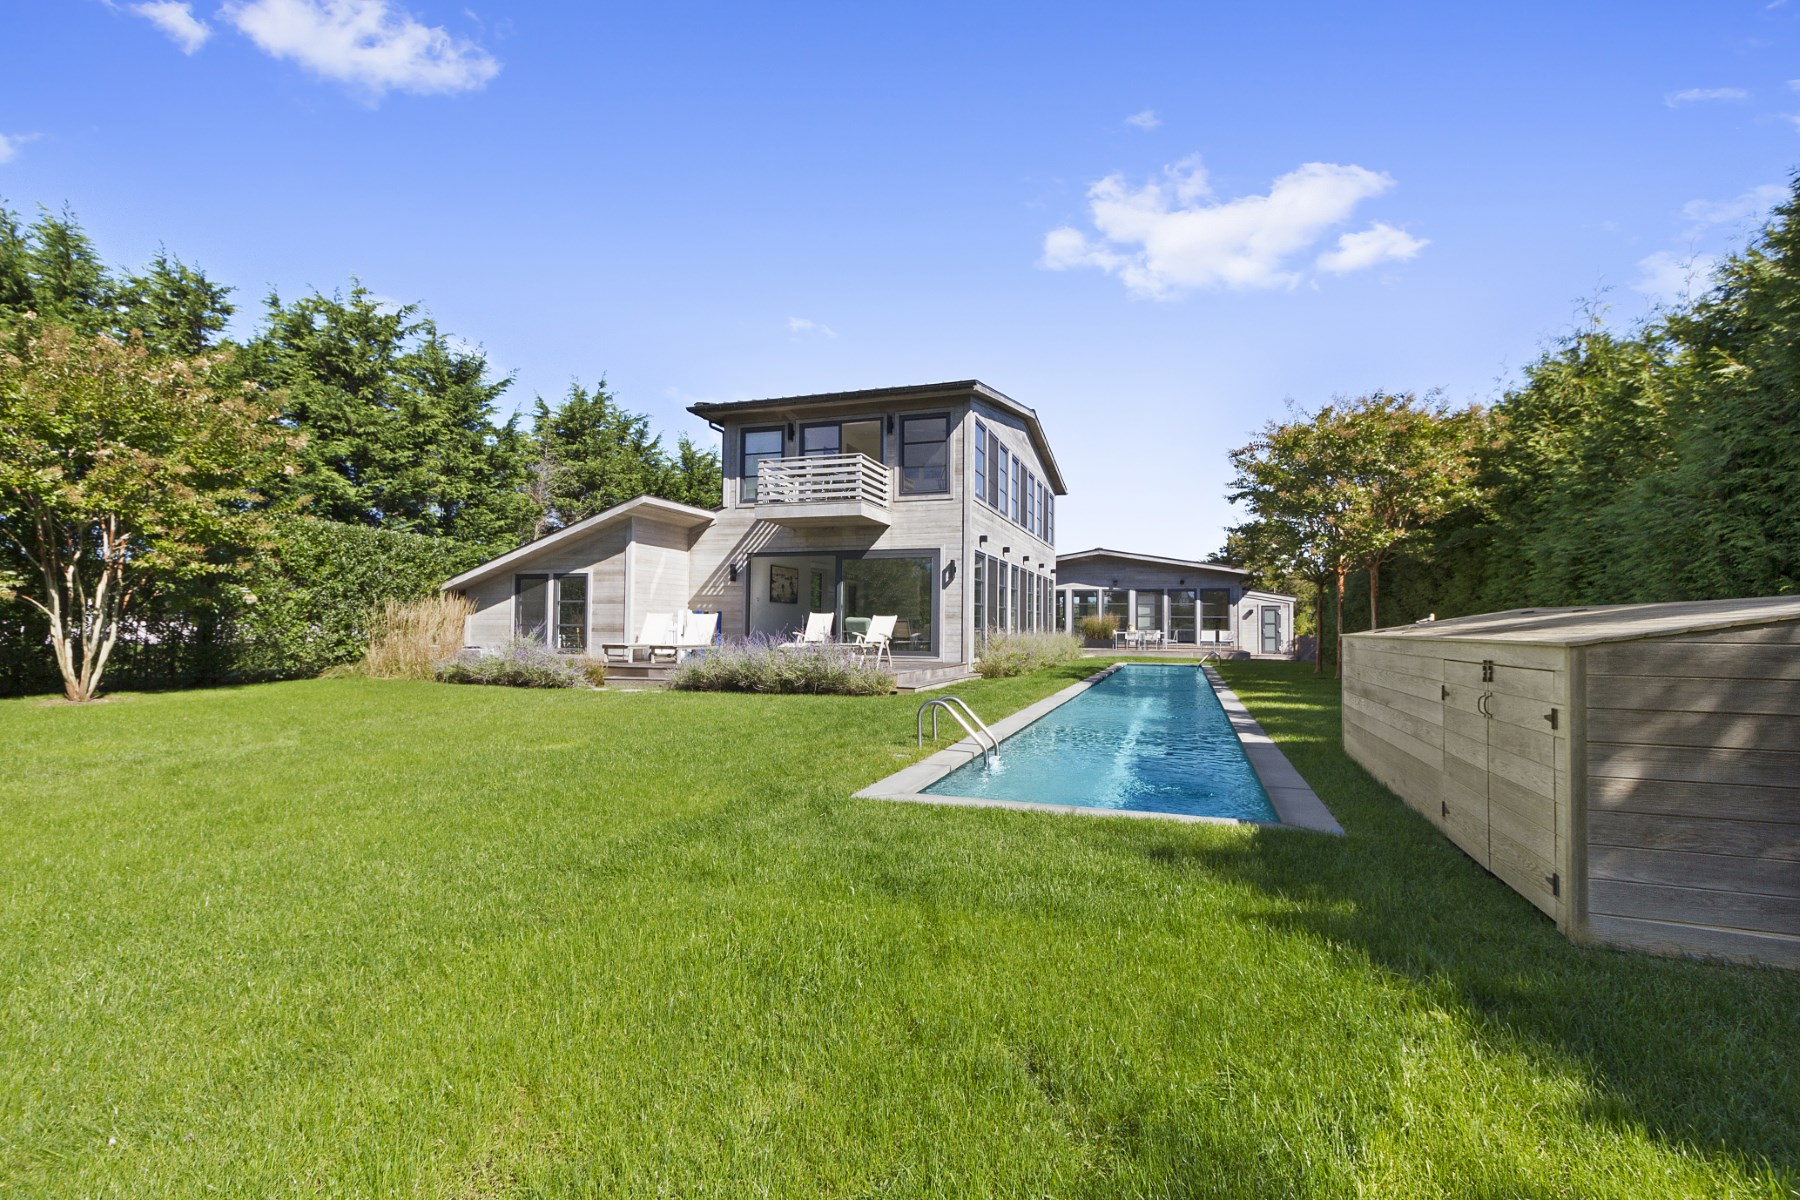 Vivienda unifamiliar por un Venta en Modern Compound, Immediate Ocean Access 108 Town Line Road Sagaponack South, Sagaponack, Nueva York, 11962 Estados Unidos